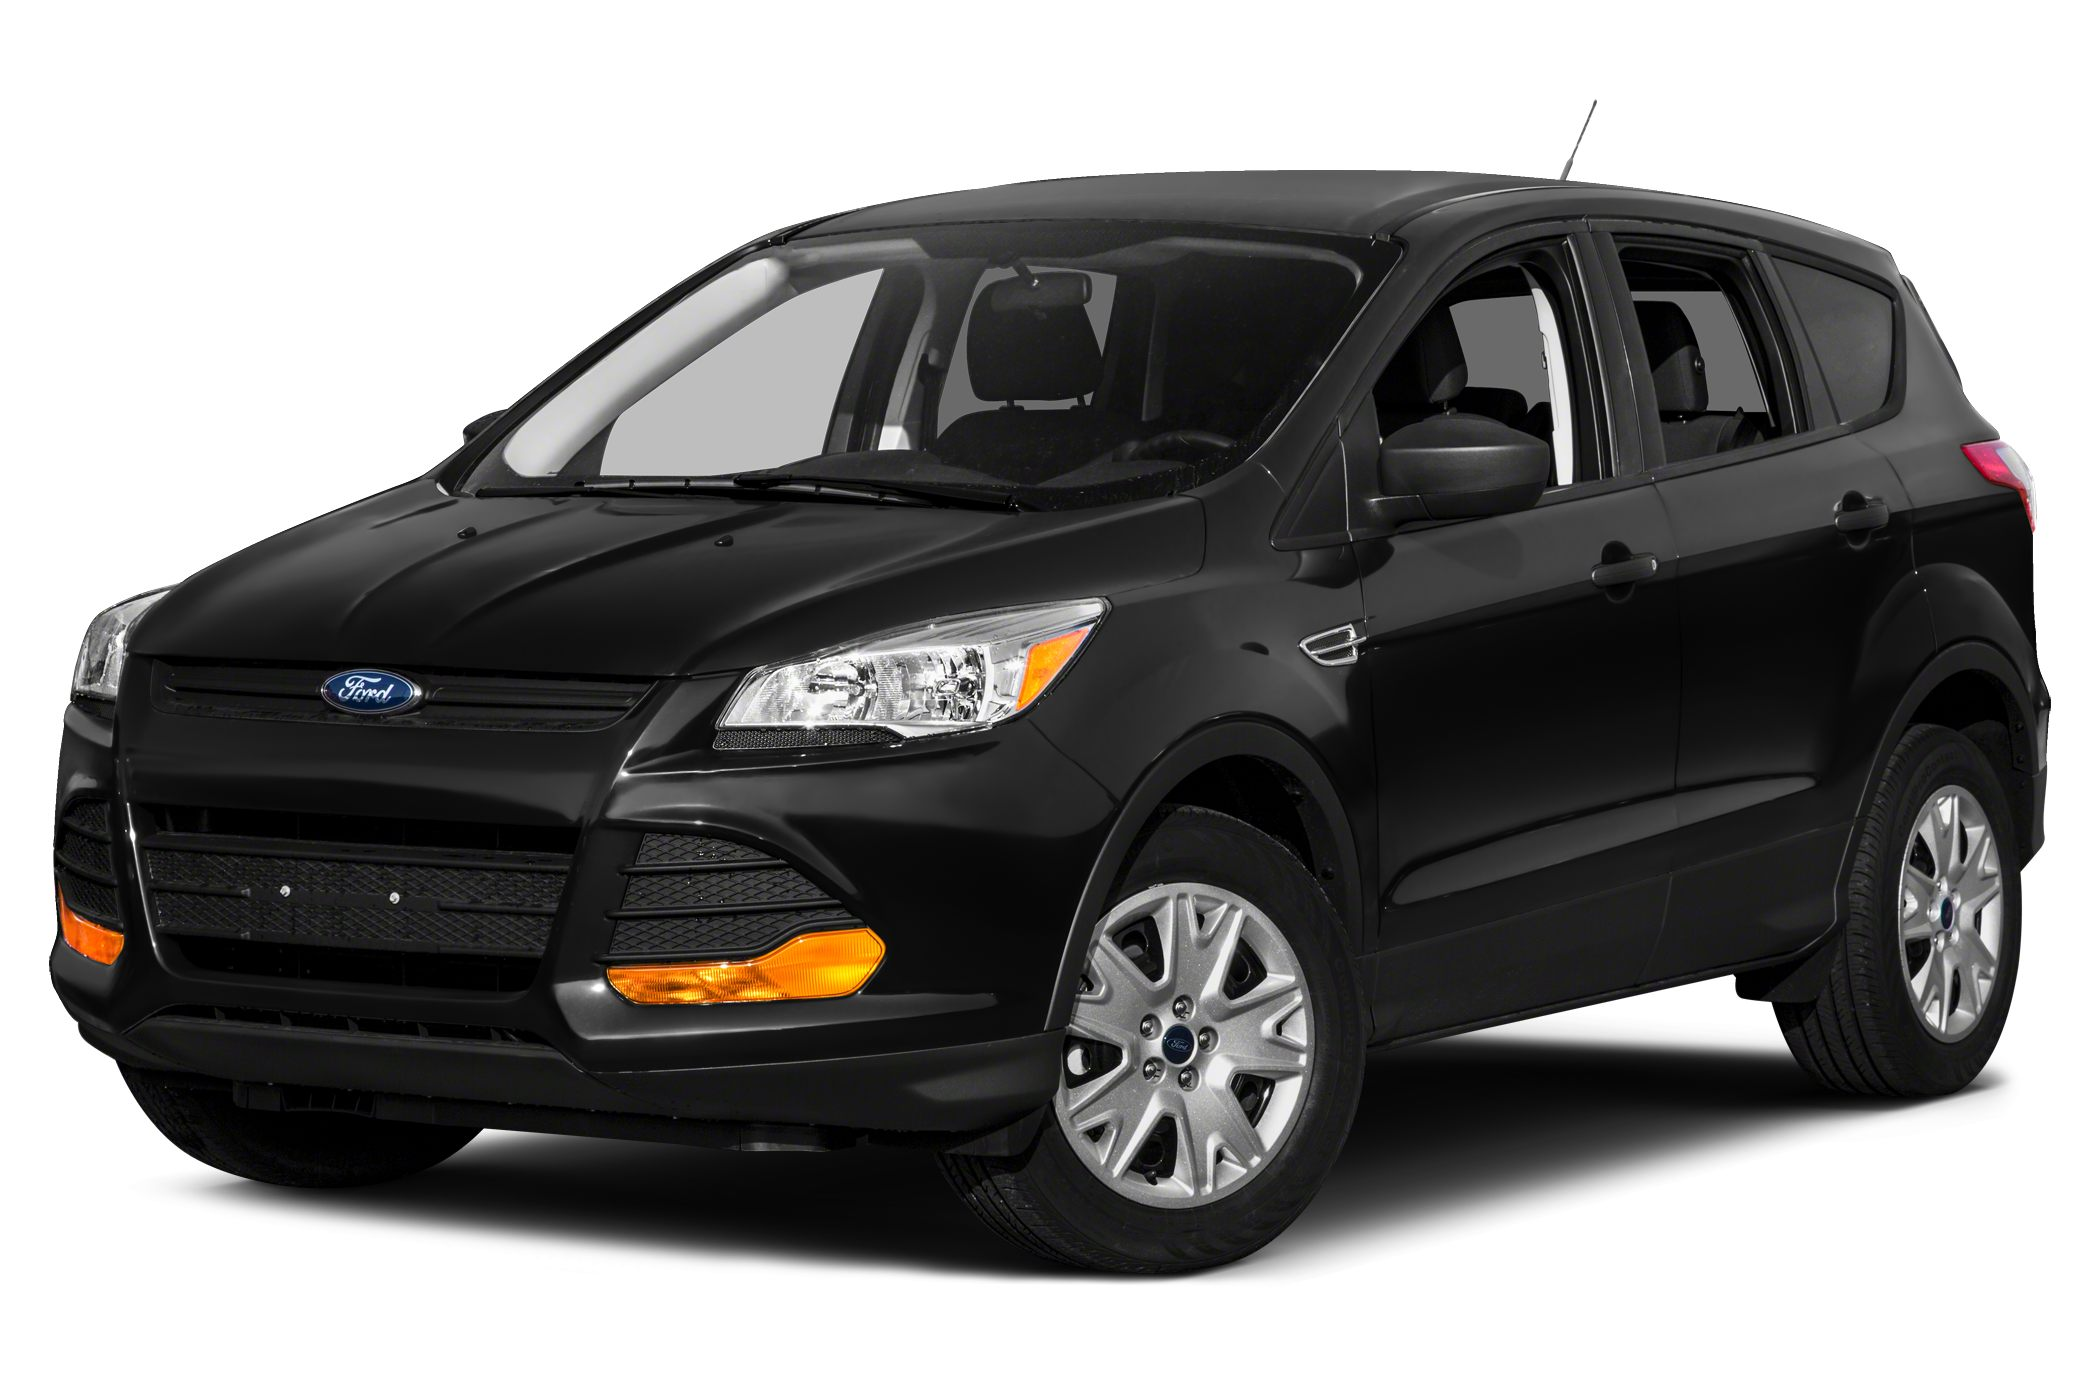 2013 Ford Escape SEL SUV for sale in Allentown for $26,989 with 36,293 miles